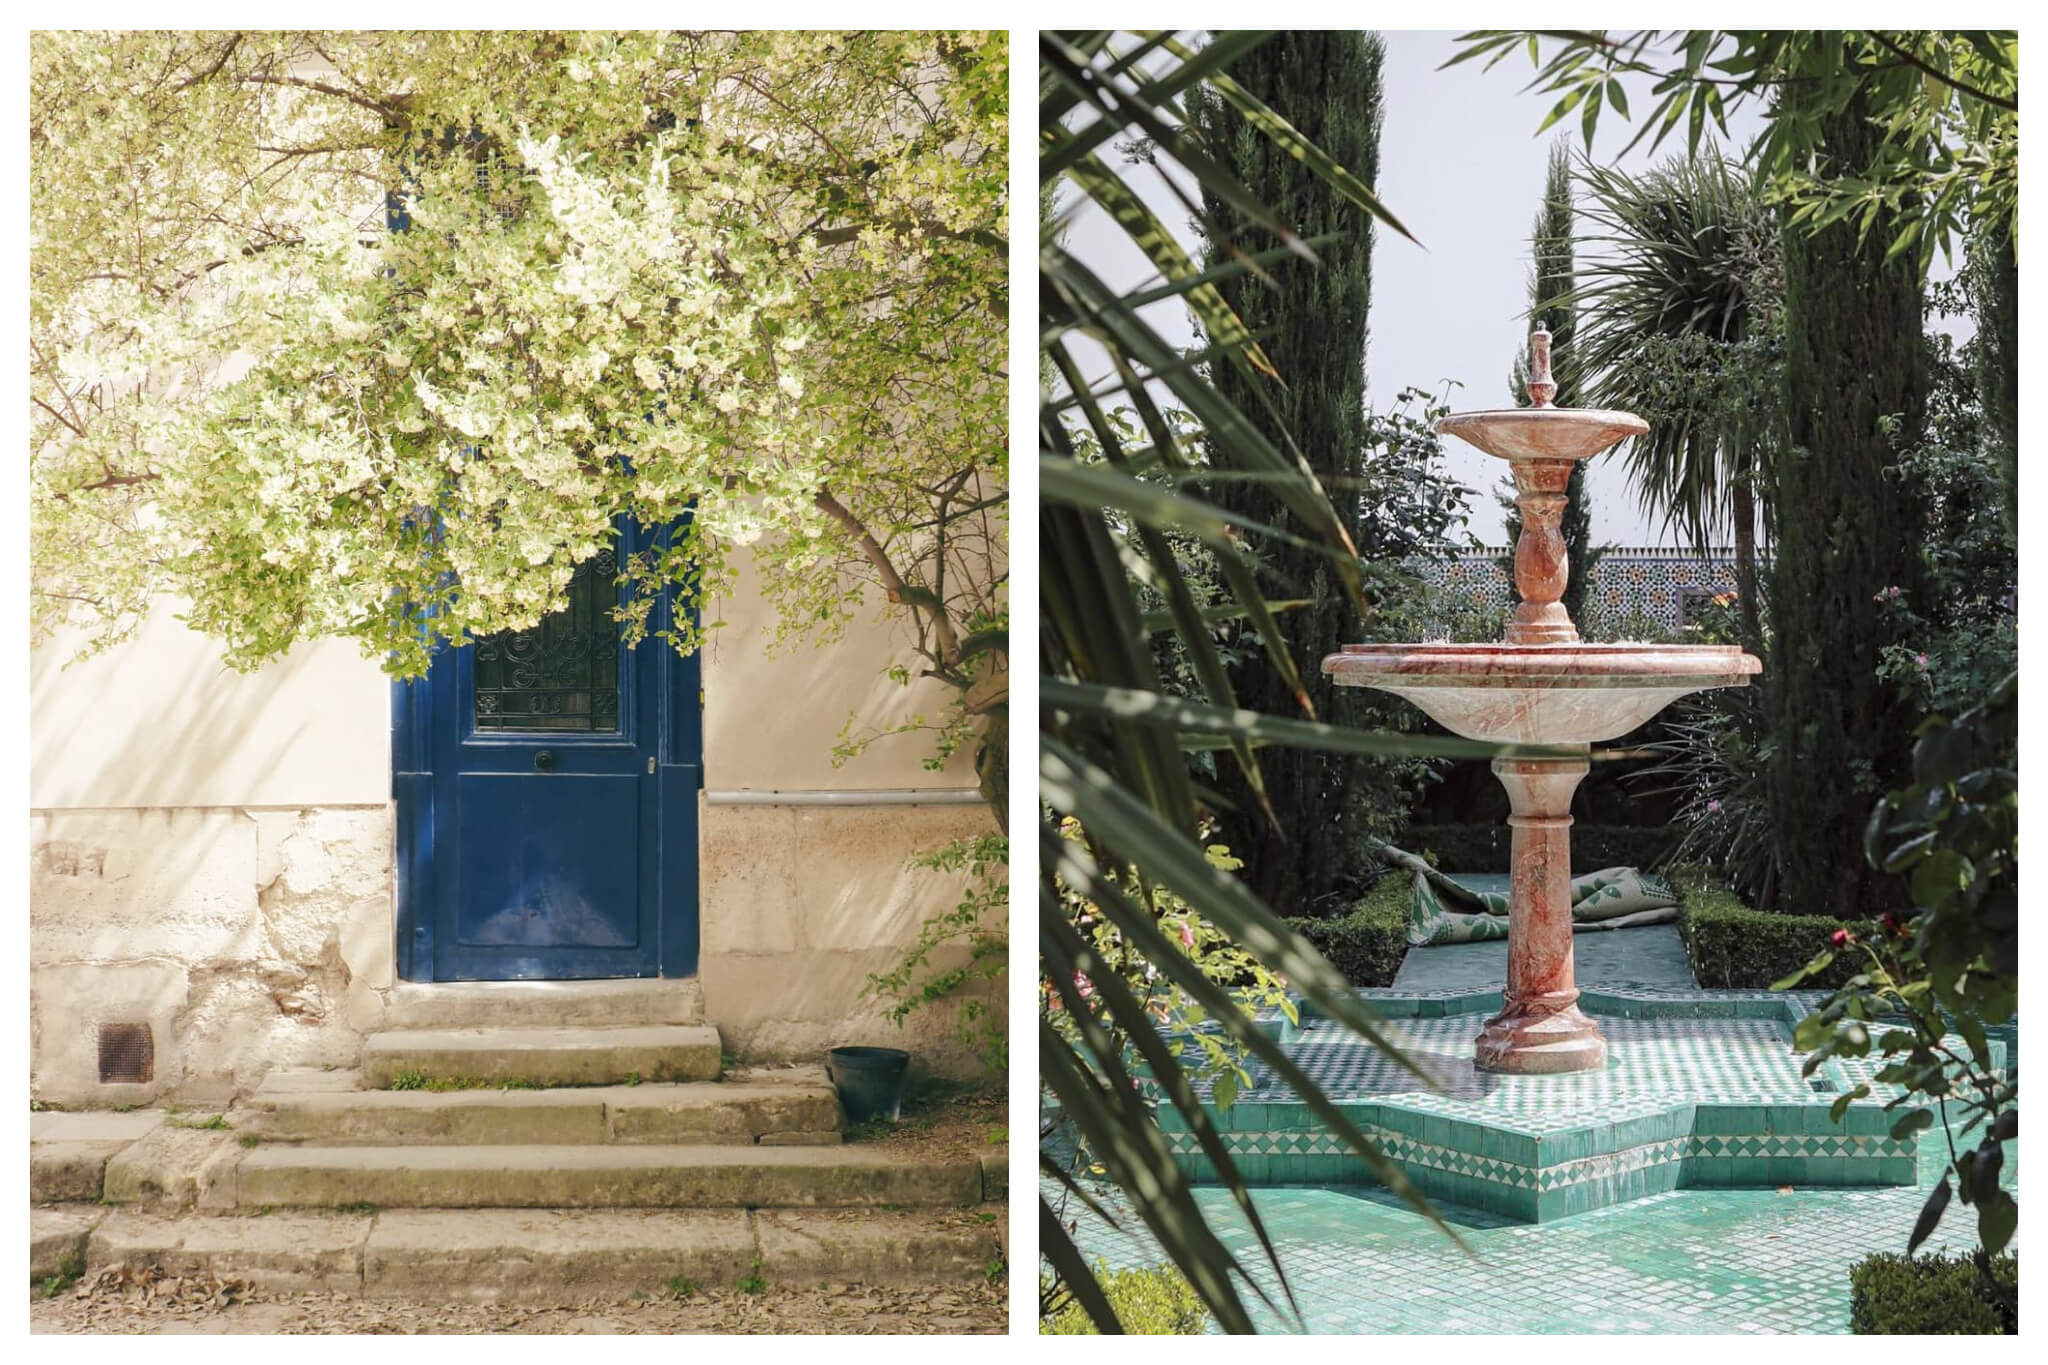 Left: A beautiful tree shades a blue door at the Jardin de Plantes in Paris' left bank on a sunny day, Right: A fountain sits atop blue and white tiles and between plants at thebeautiful Grande Mosquée de Paris